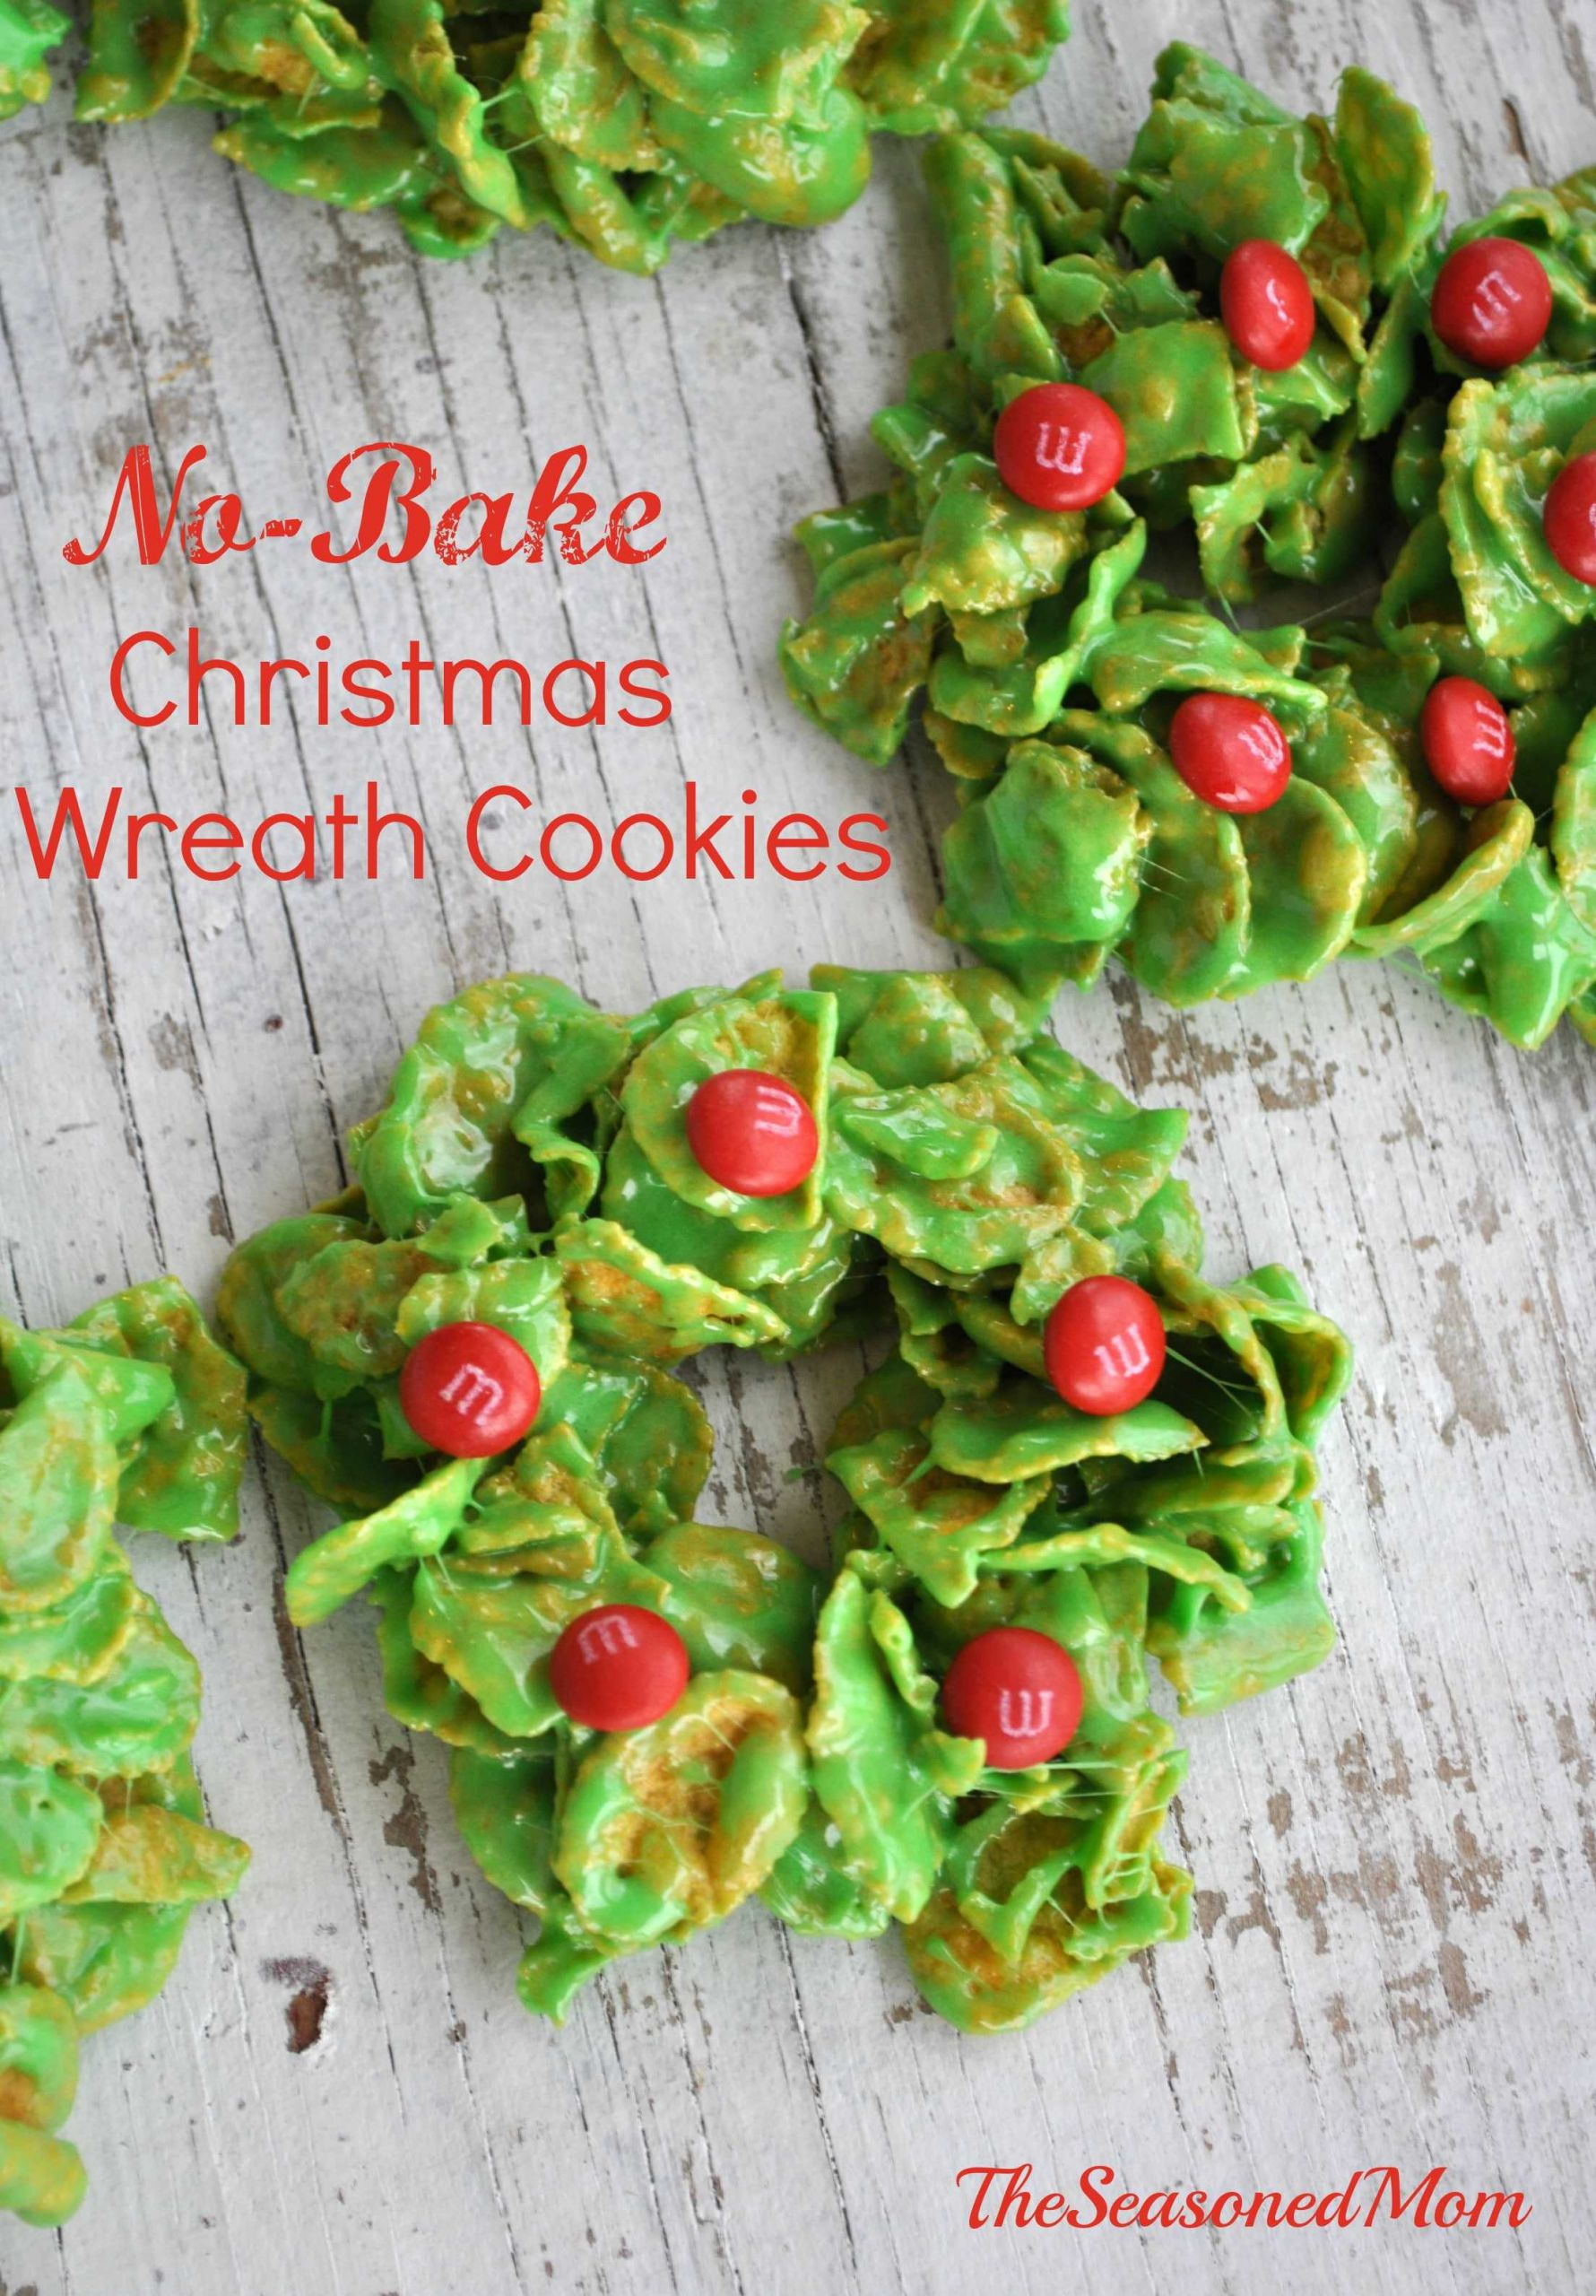 No Bake Holiday Cookies  Holiday Cookies with M&M s Can s The Seasoned Mom